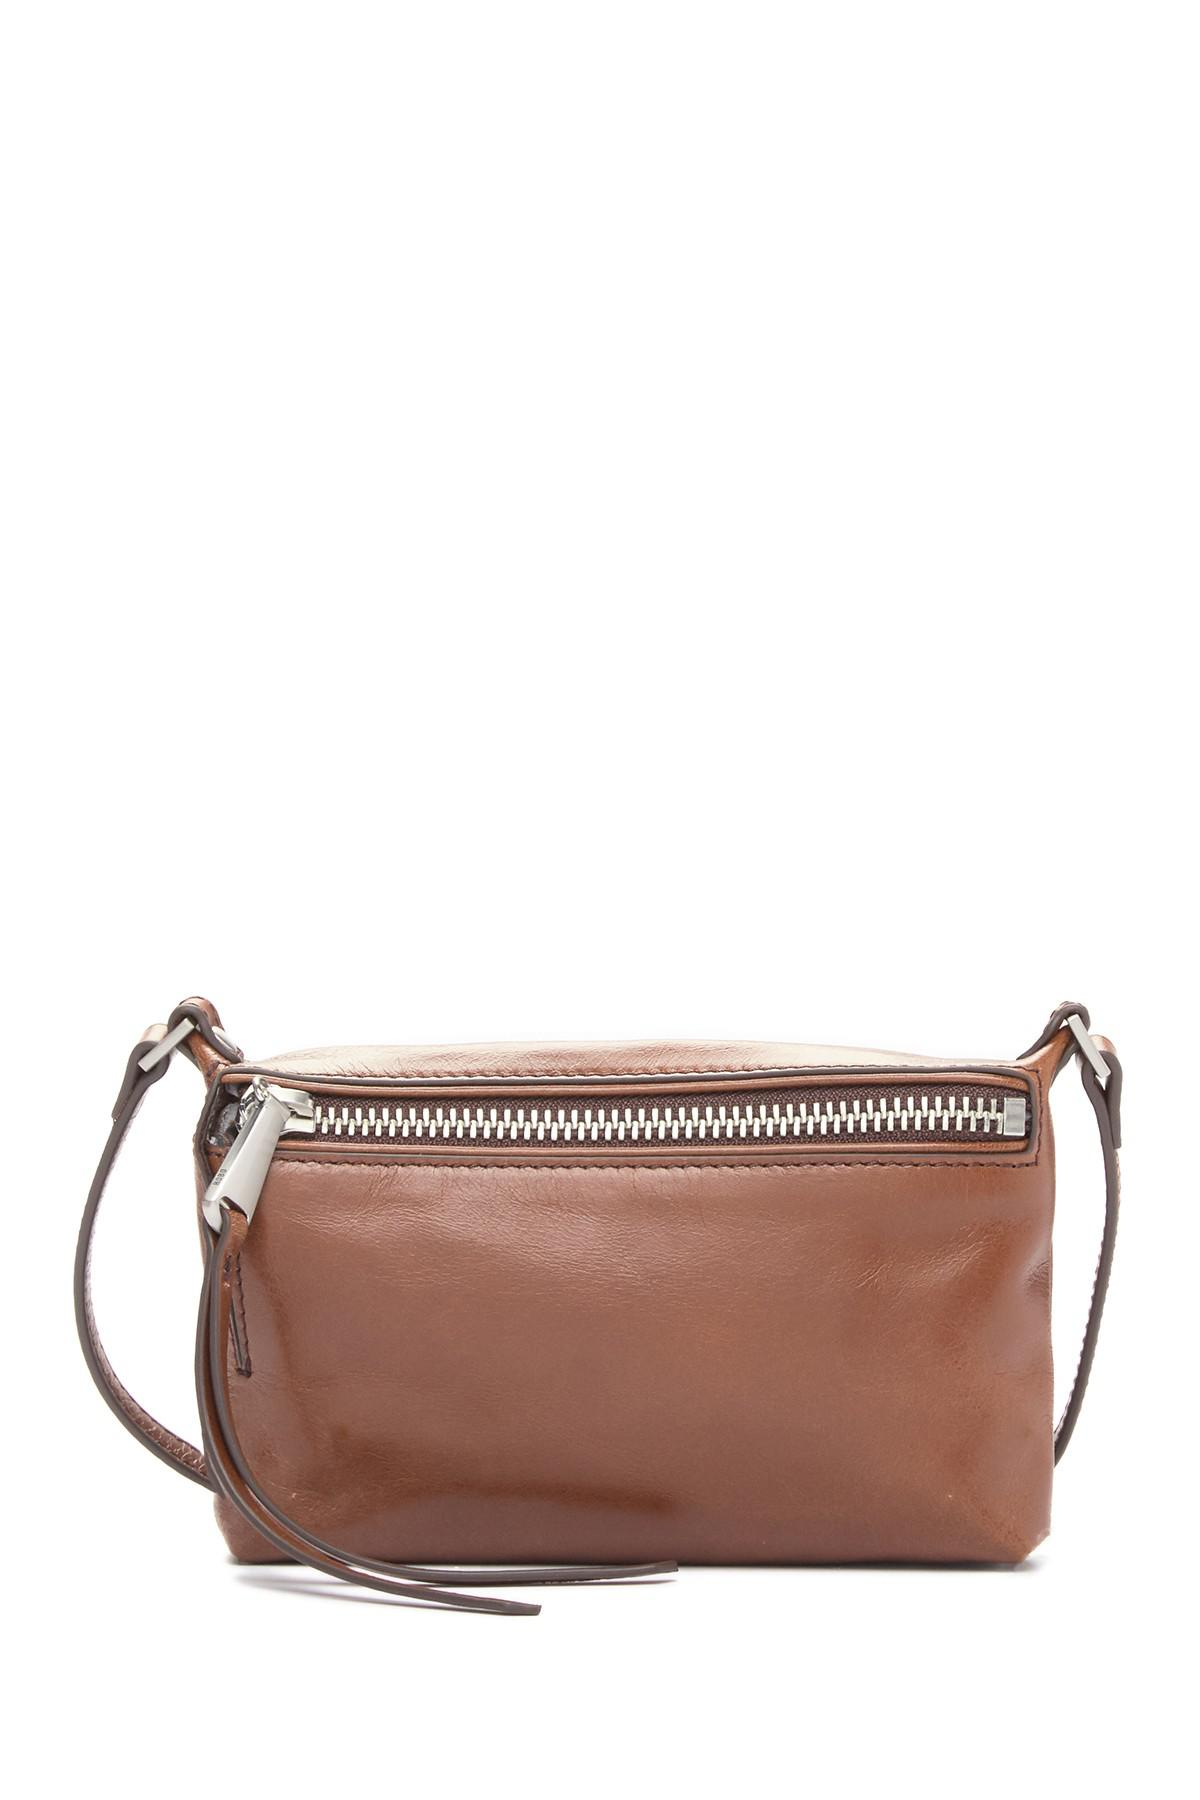 e0b88f84d50063 Lyst - Hobo Alexis Leather Crossbody Bag in Brown